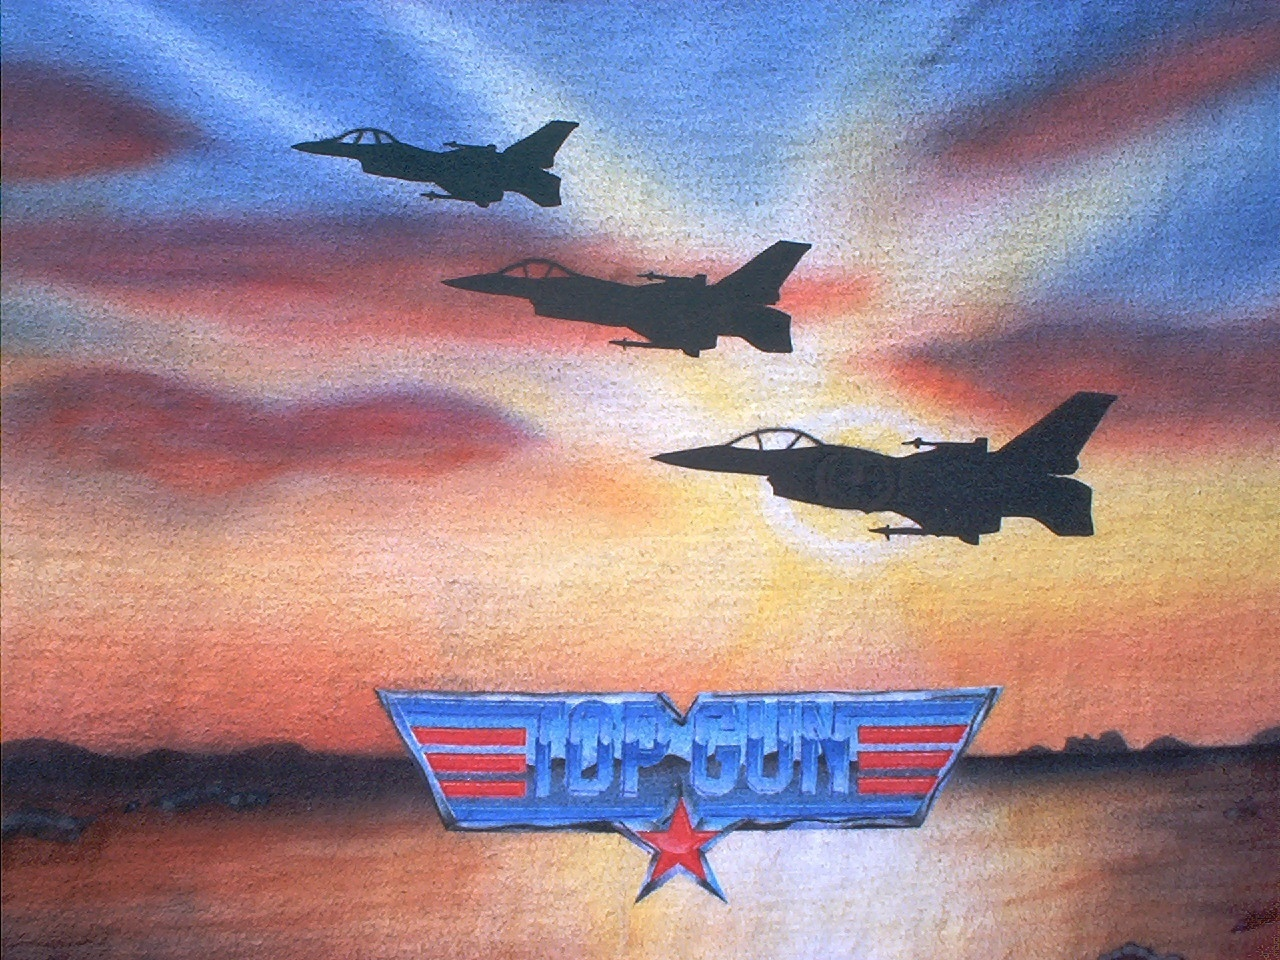 Top Gun Logos Top Gun Front Three Fighters